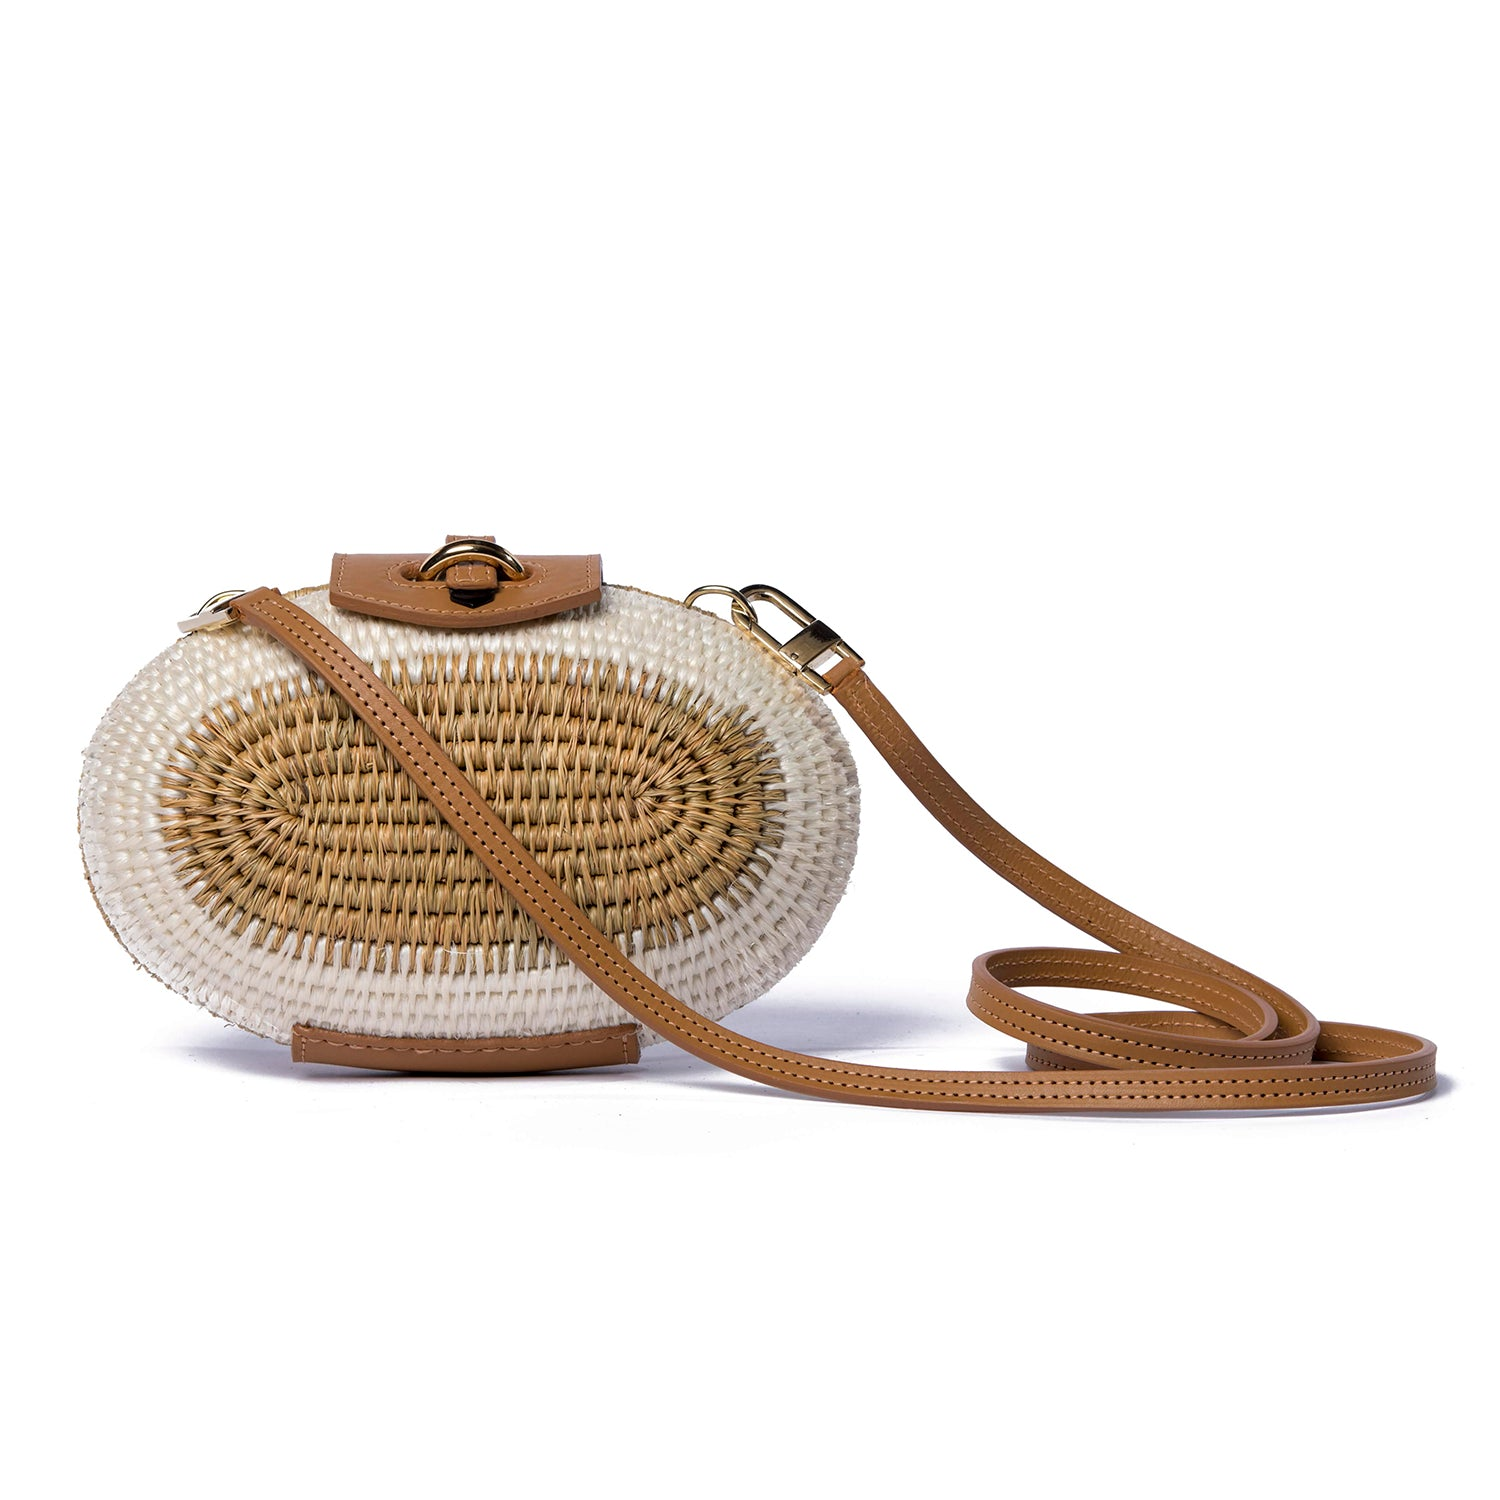 Lindi Sandstone Leather-Trimmed Straw Shoulder Bag